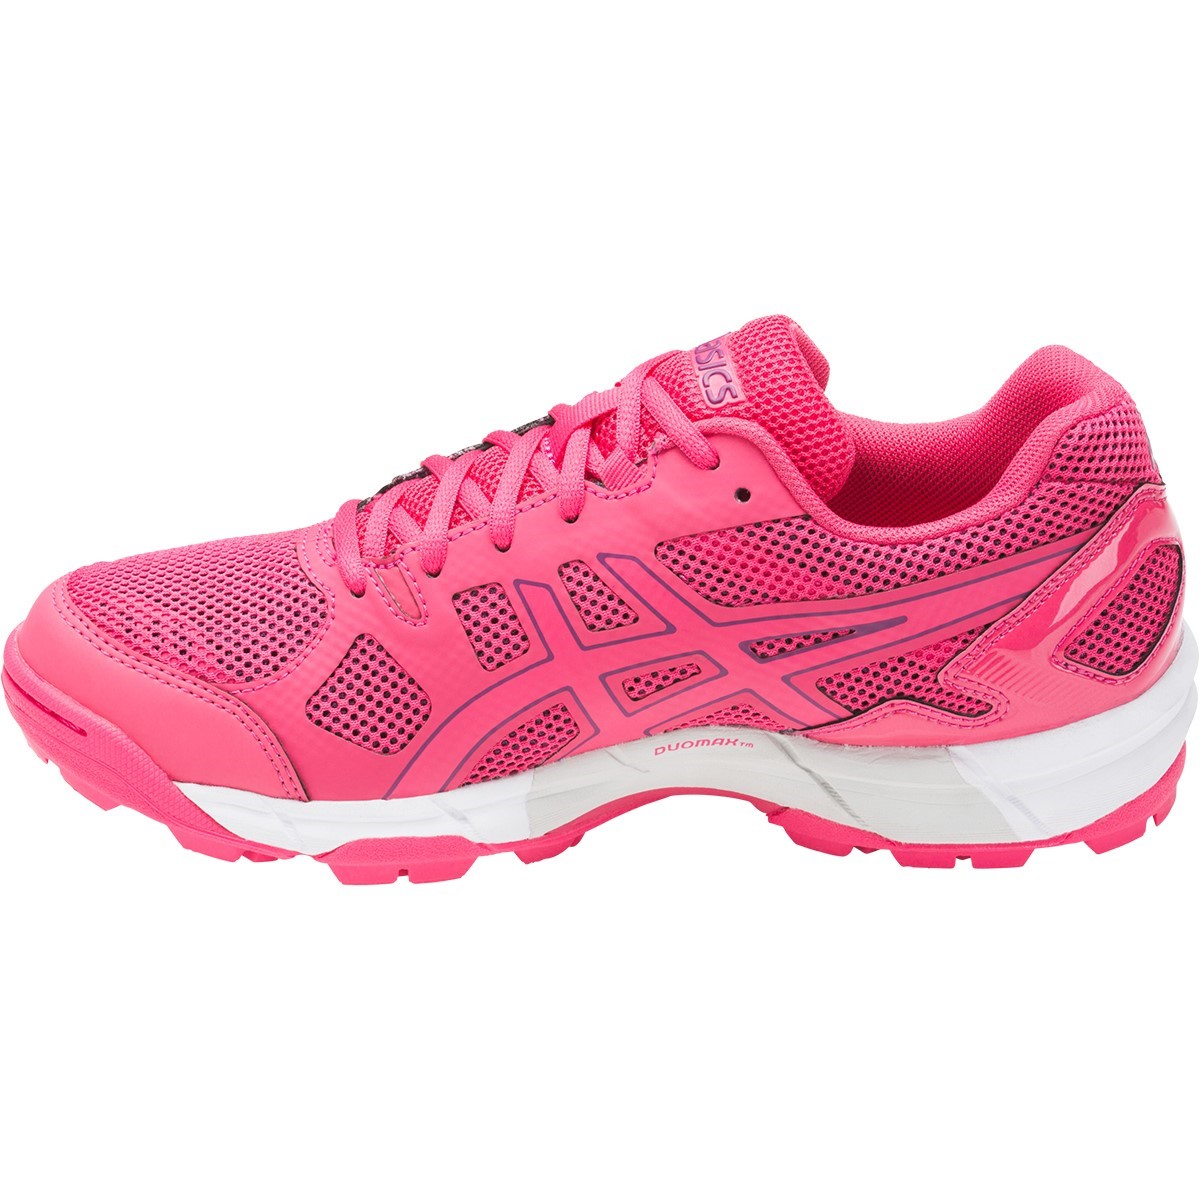 reputable site 100% top quality terrific value Asics Gel Lethal Elite 6 - Womens Turf Shoes